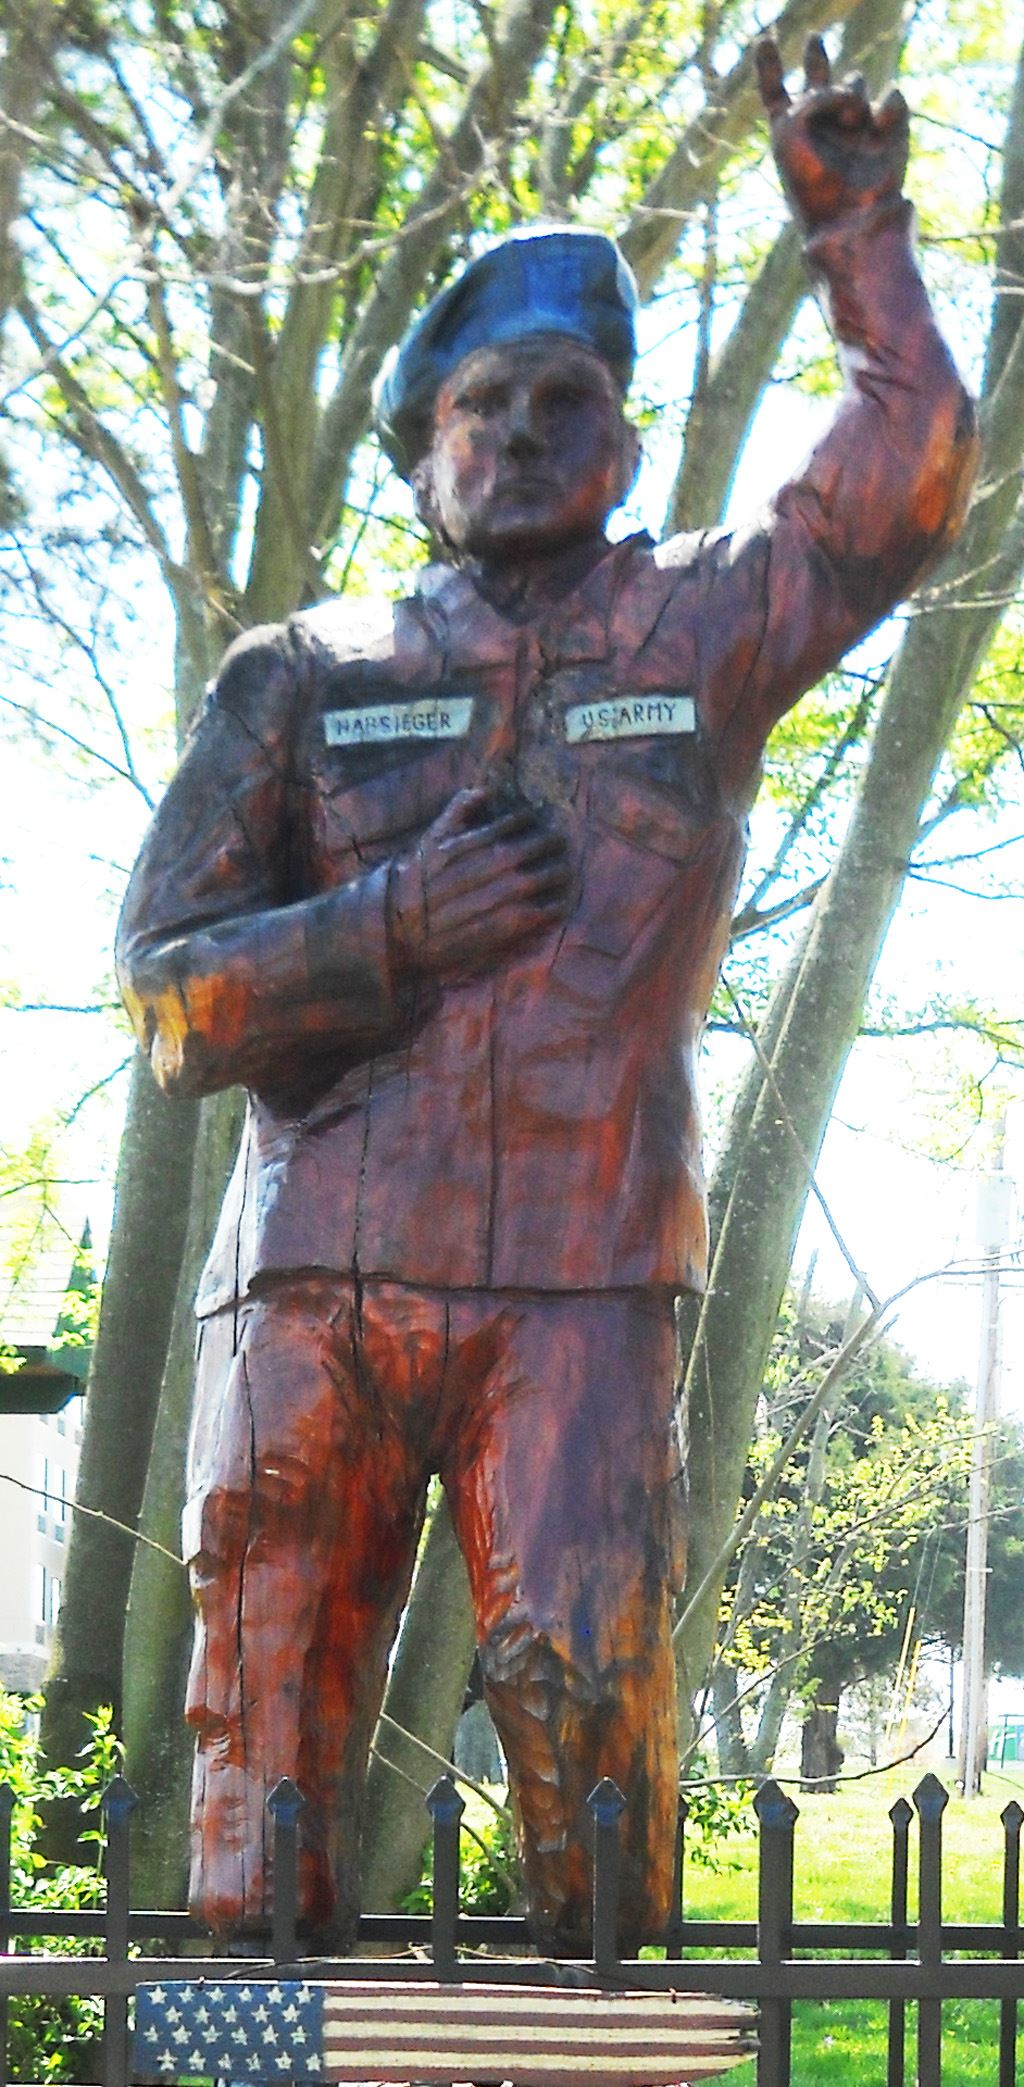 Andy Habsieger Statue